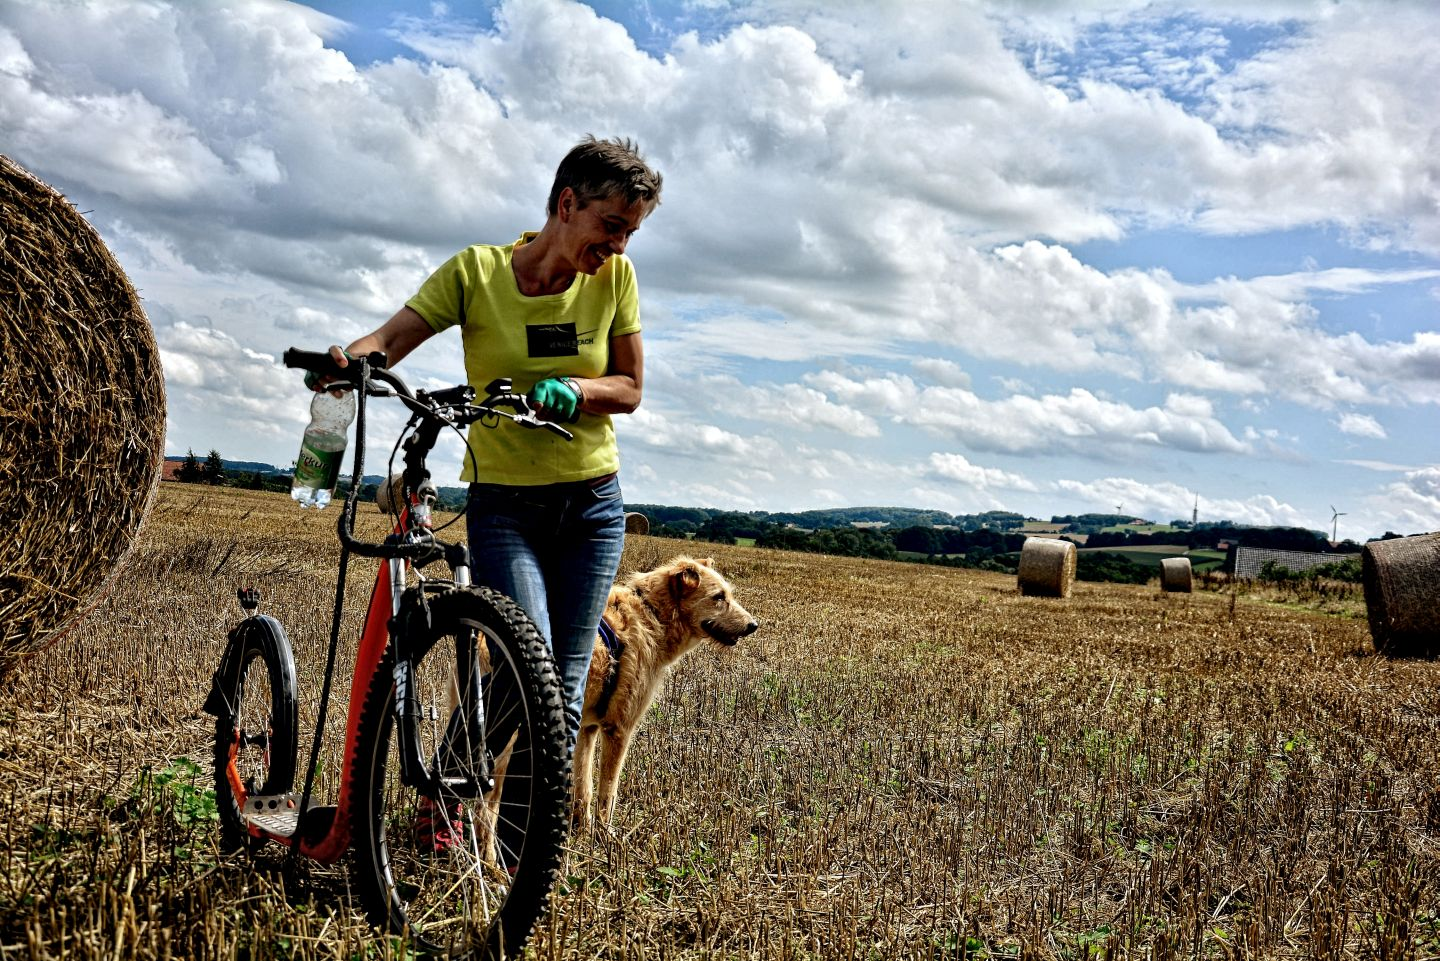 Dogscooter-Zughundesport-APORT-28